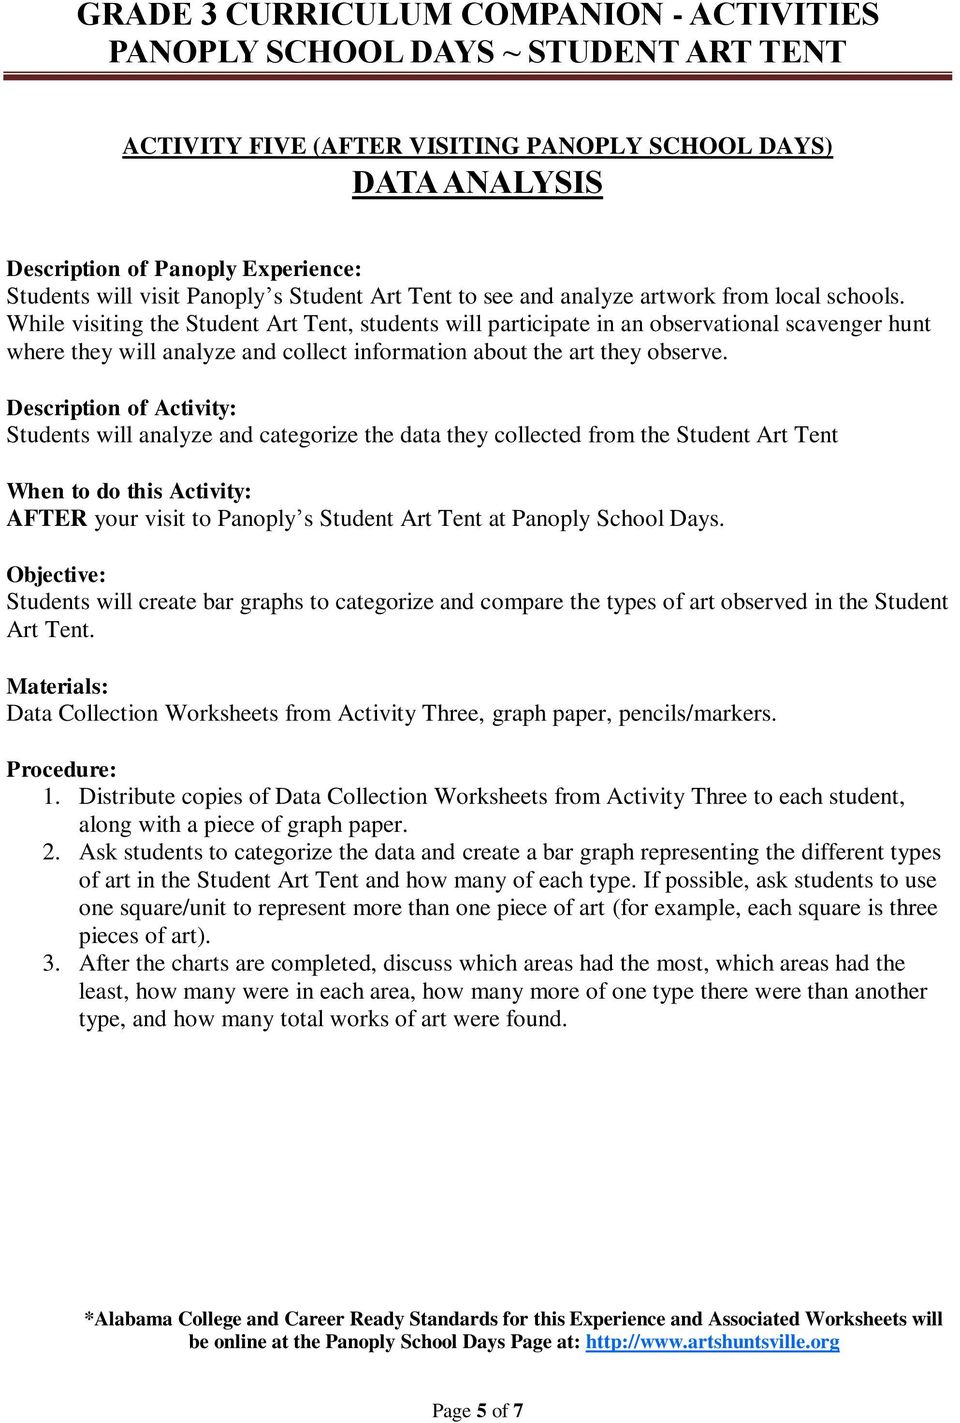 hight resolution of GRADE 3 CURRICULUM COMPANION - ACTIVITIES PANOPLY SCHOOL DAYS ~ STUDENT ART  TENT - PDF Free Download